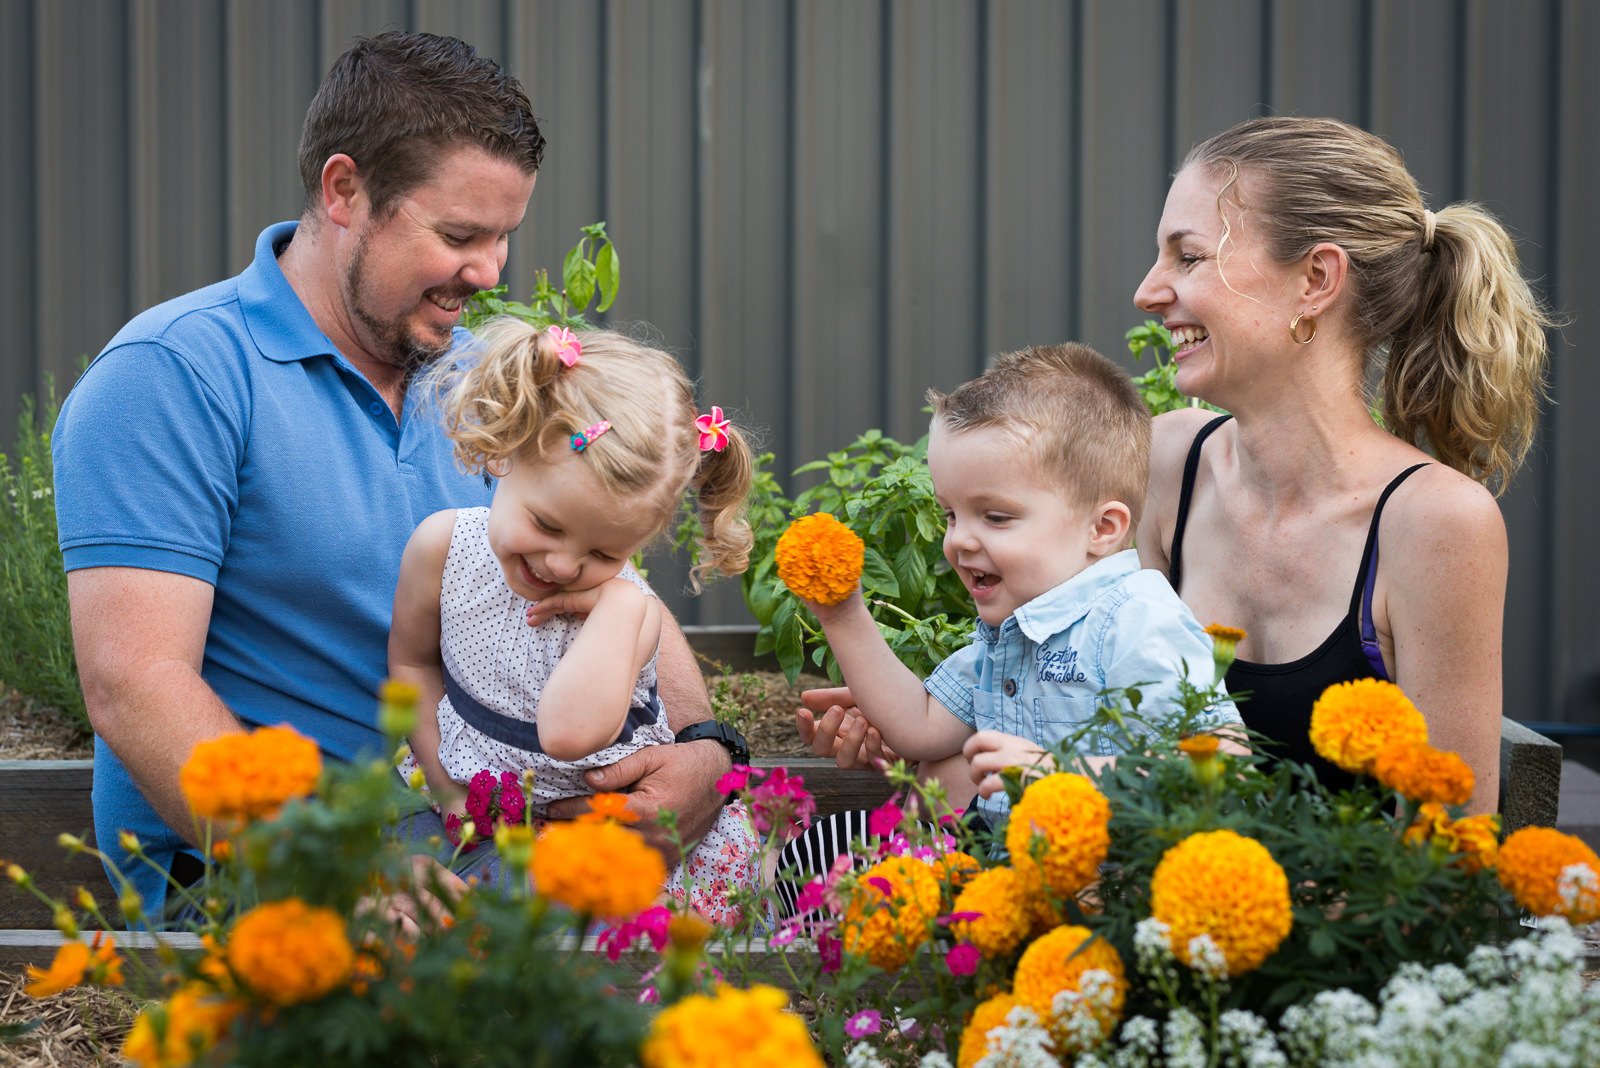 candid family portrait of parents and children in their backyard garden at home in Elimbah